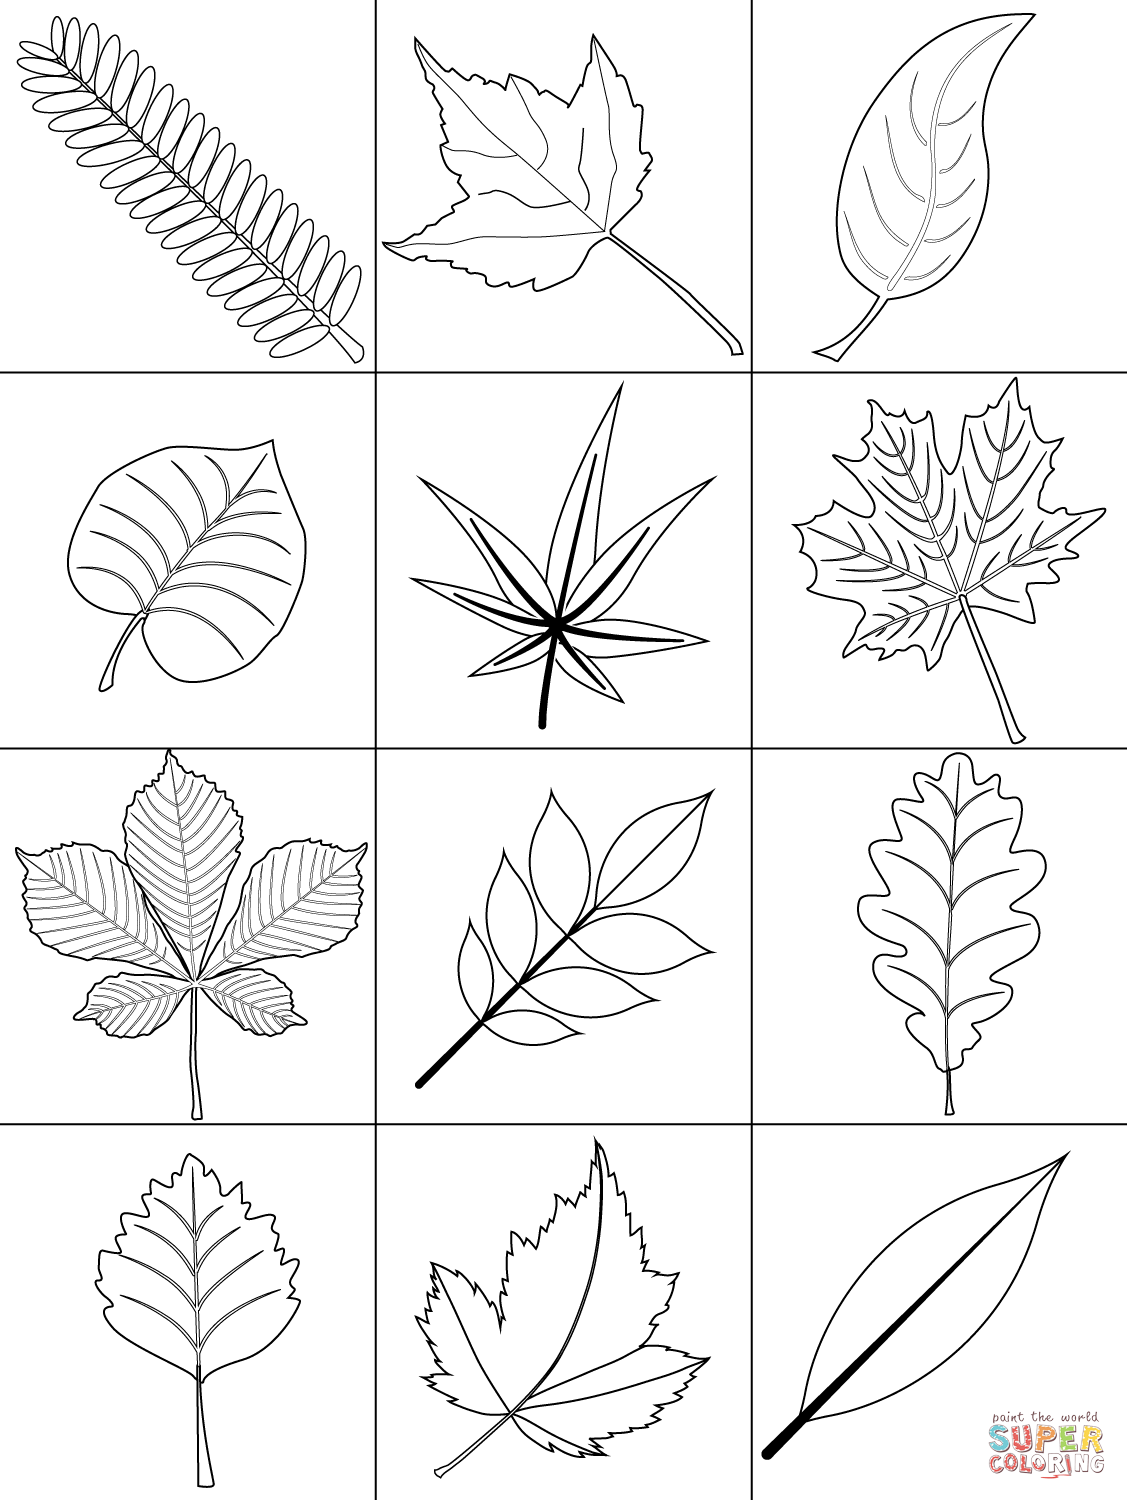 coloring sheet leaves coloring an autumn leaf with oil pastels art for kids hub leaves sheet coloring